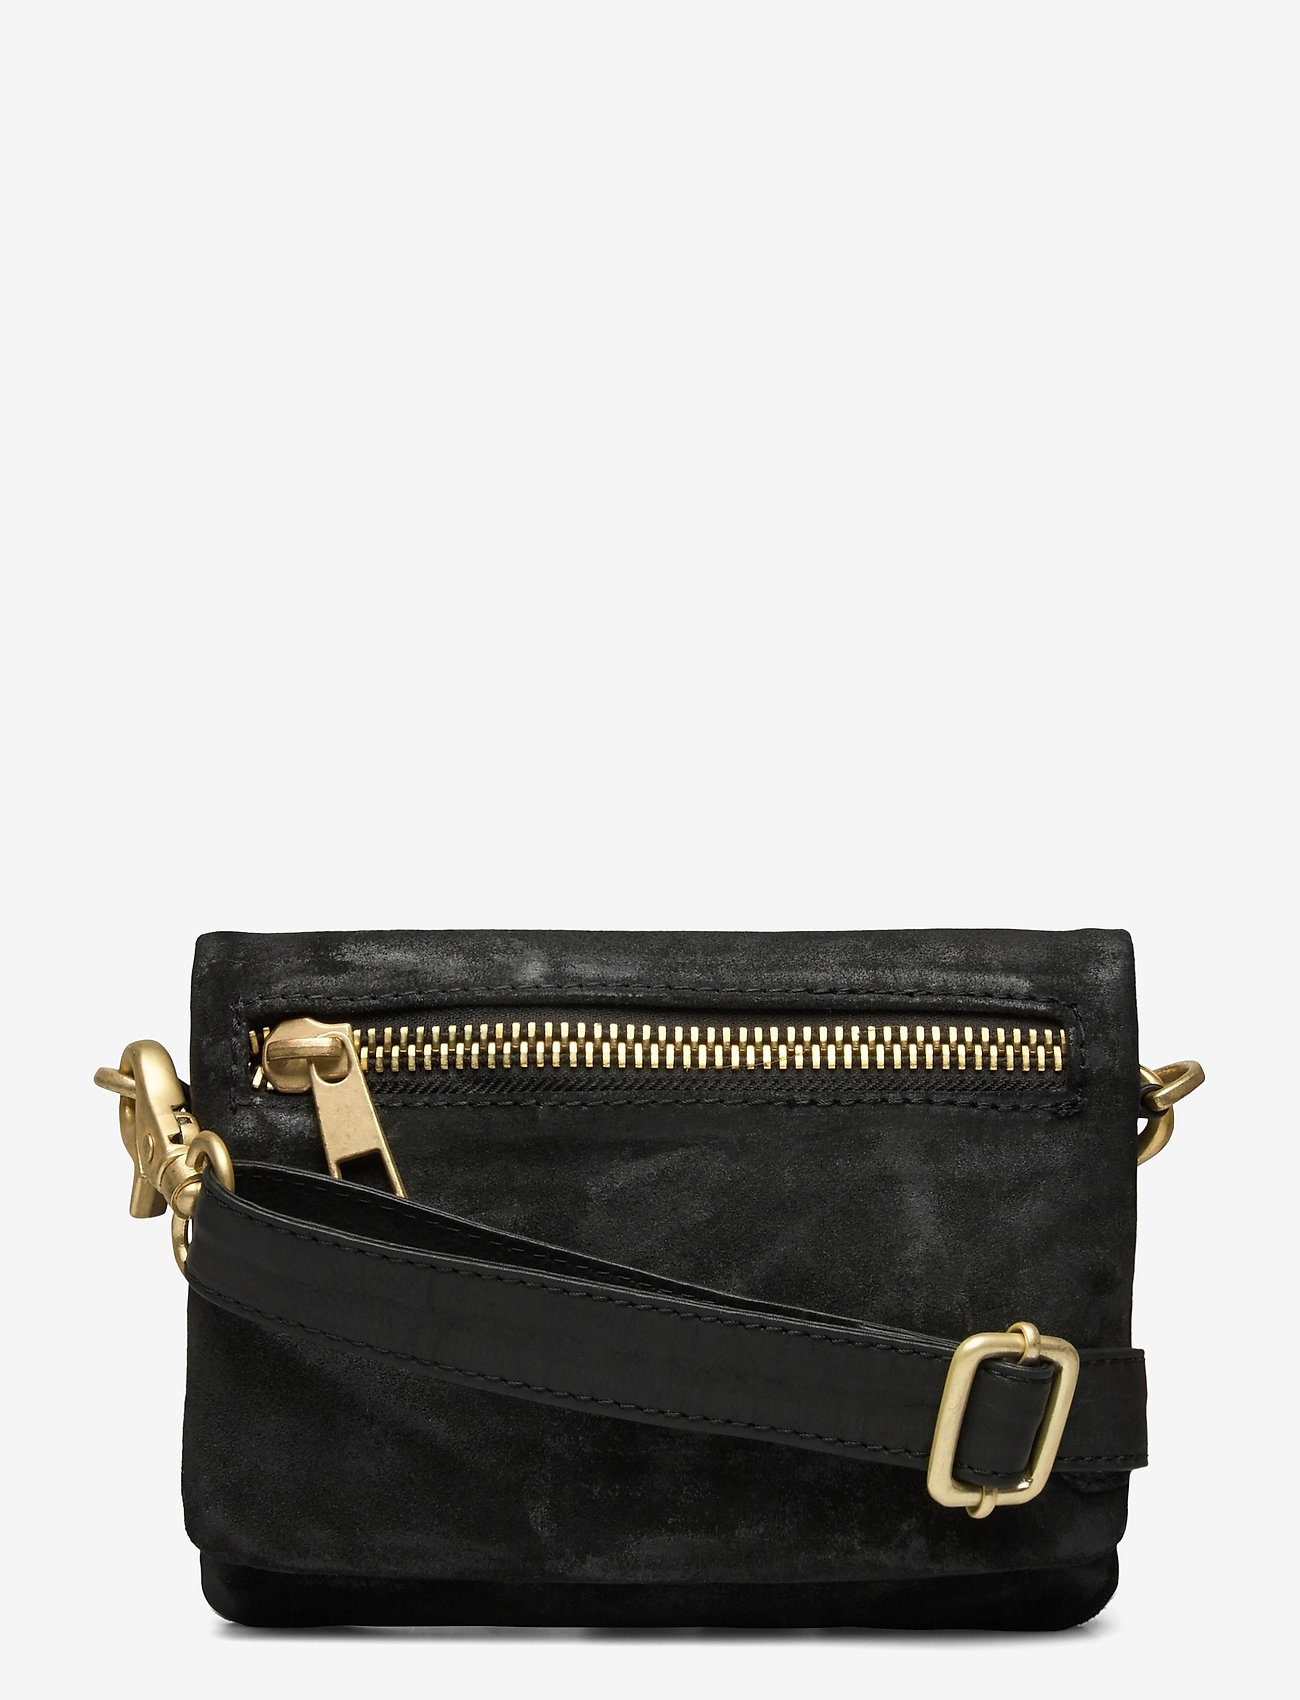 DEPECHE - Small bag / Clutch - clutches - 099 black (nero) - 0